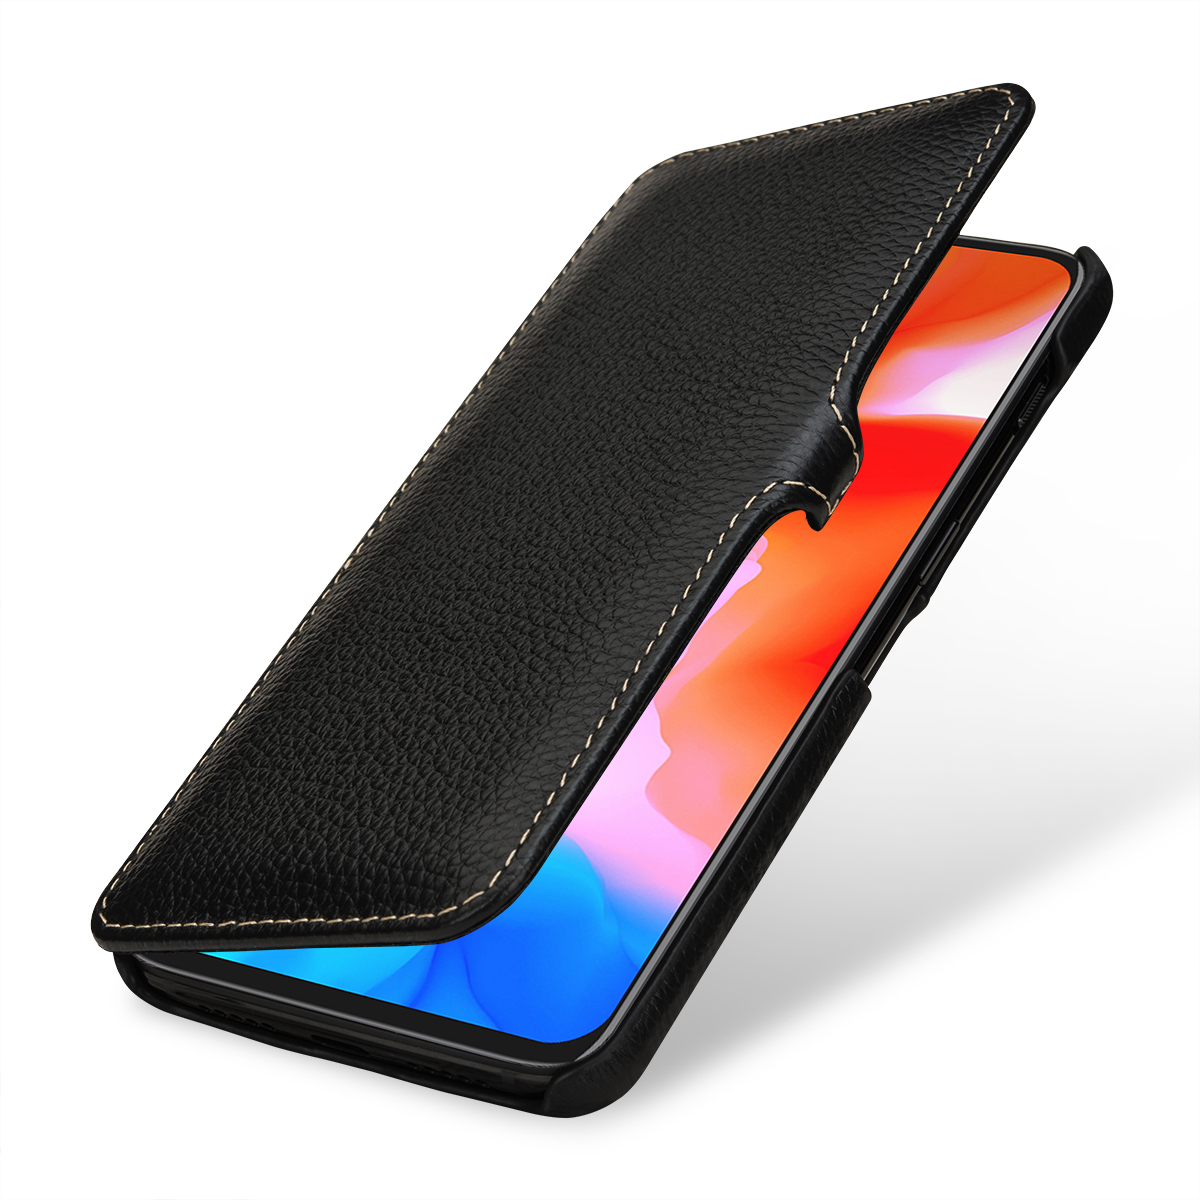 quality design 288bd bb25a StilGut - OnePlus 6T Cover Book Type with Clip